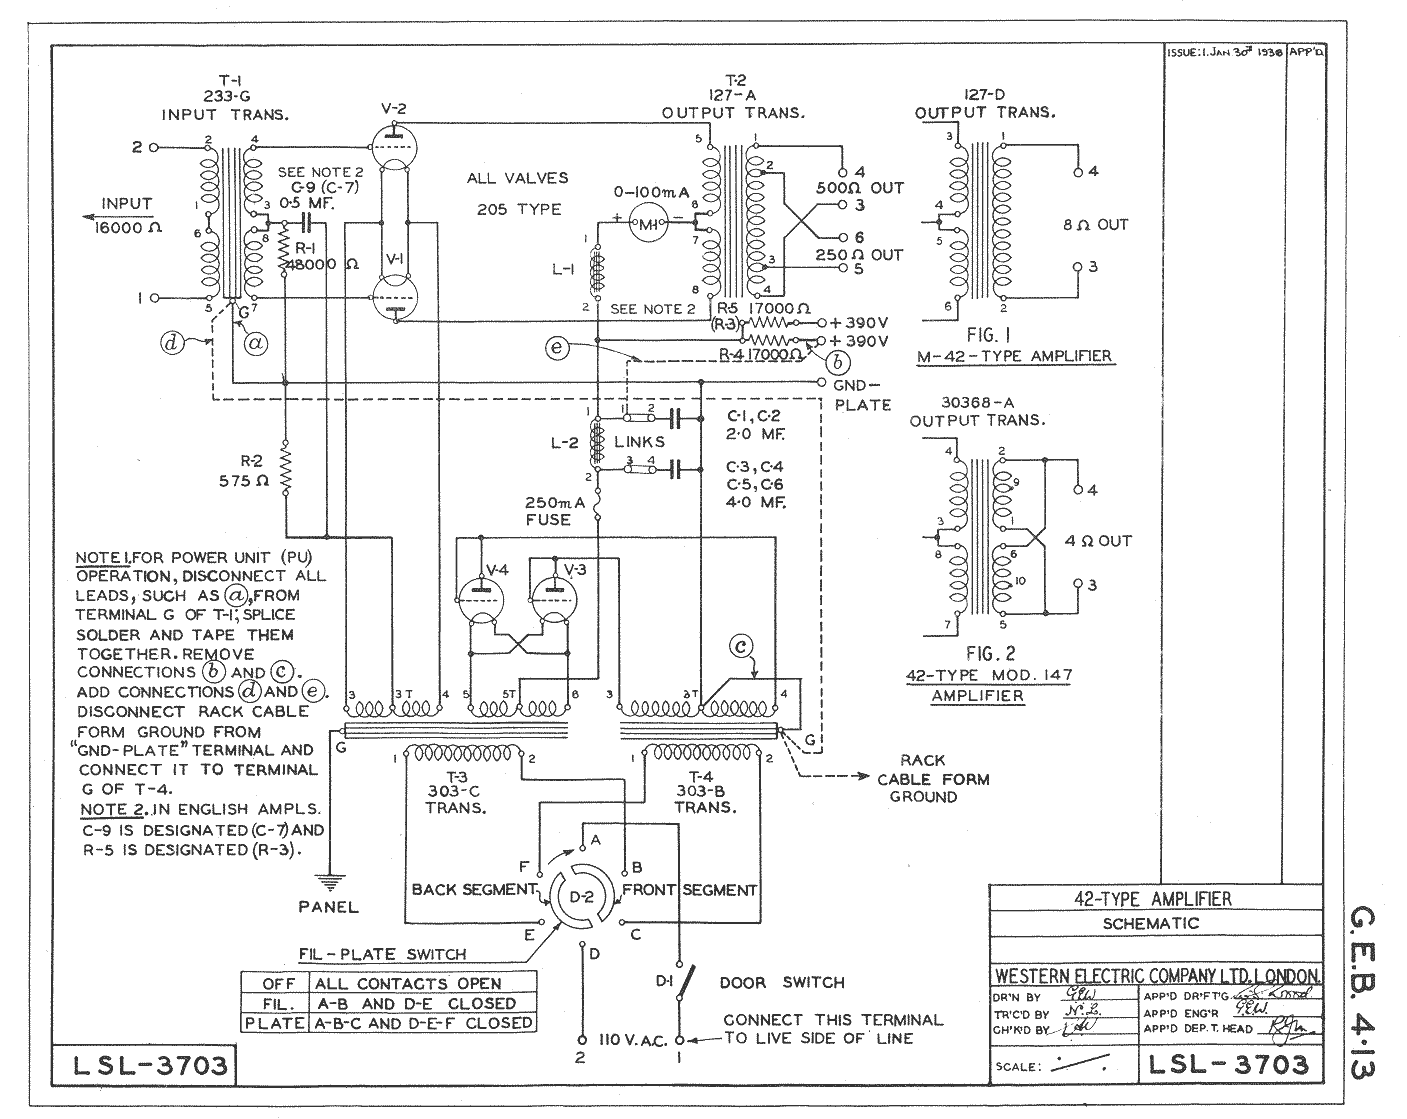 100 amplifiers part 1 1916 45 lilienthal engineering rh lilienthalengineering com Residential Garage Car Lifts Hydraulic Jack Schematic